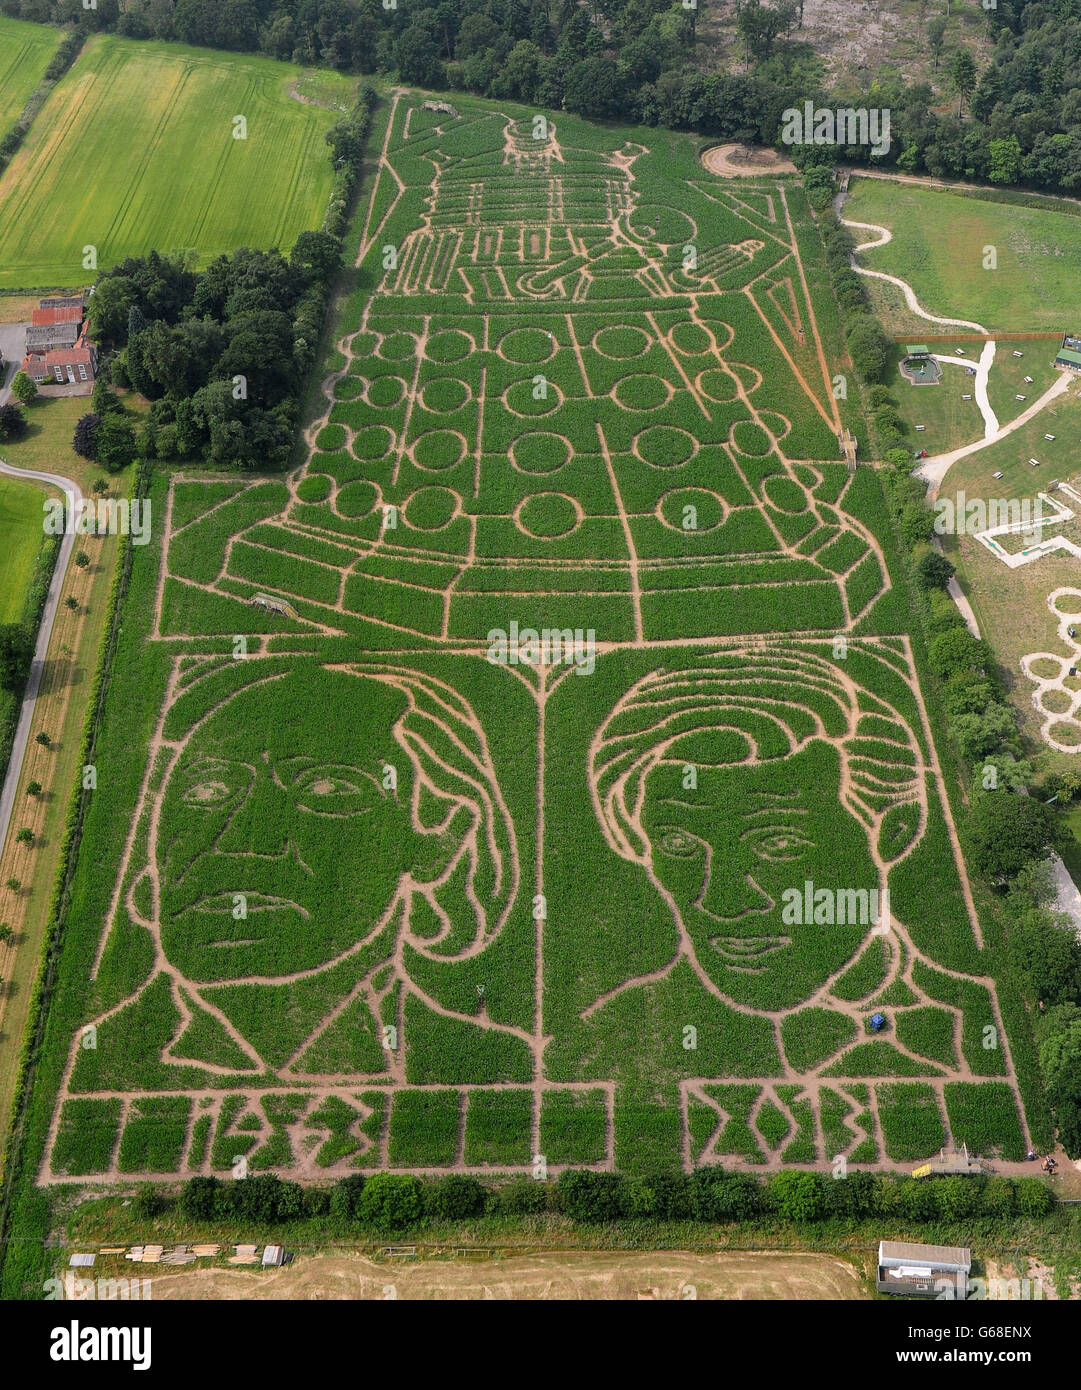 Doctor Who at York Maze - Stock Image